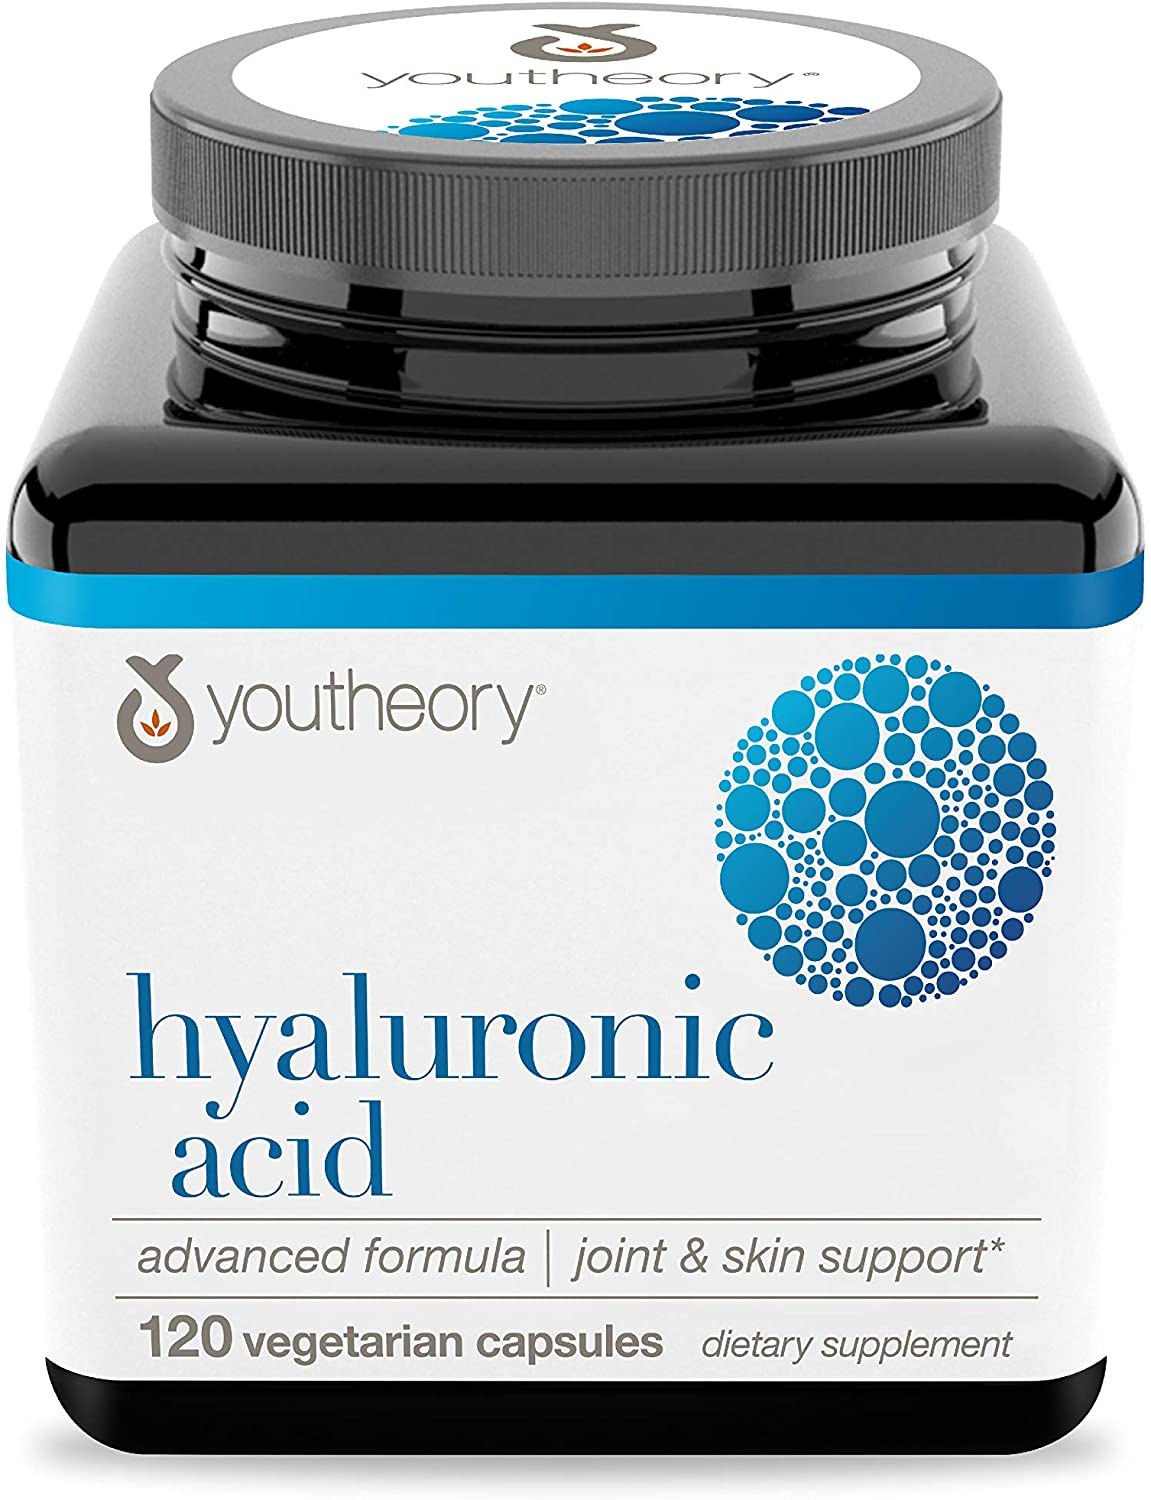 Youtheory Hyaluronic Acid Advanced with Boswellia - 120 Tablet